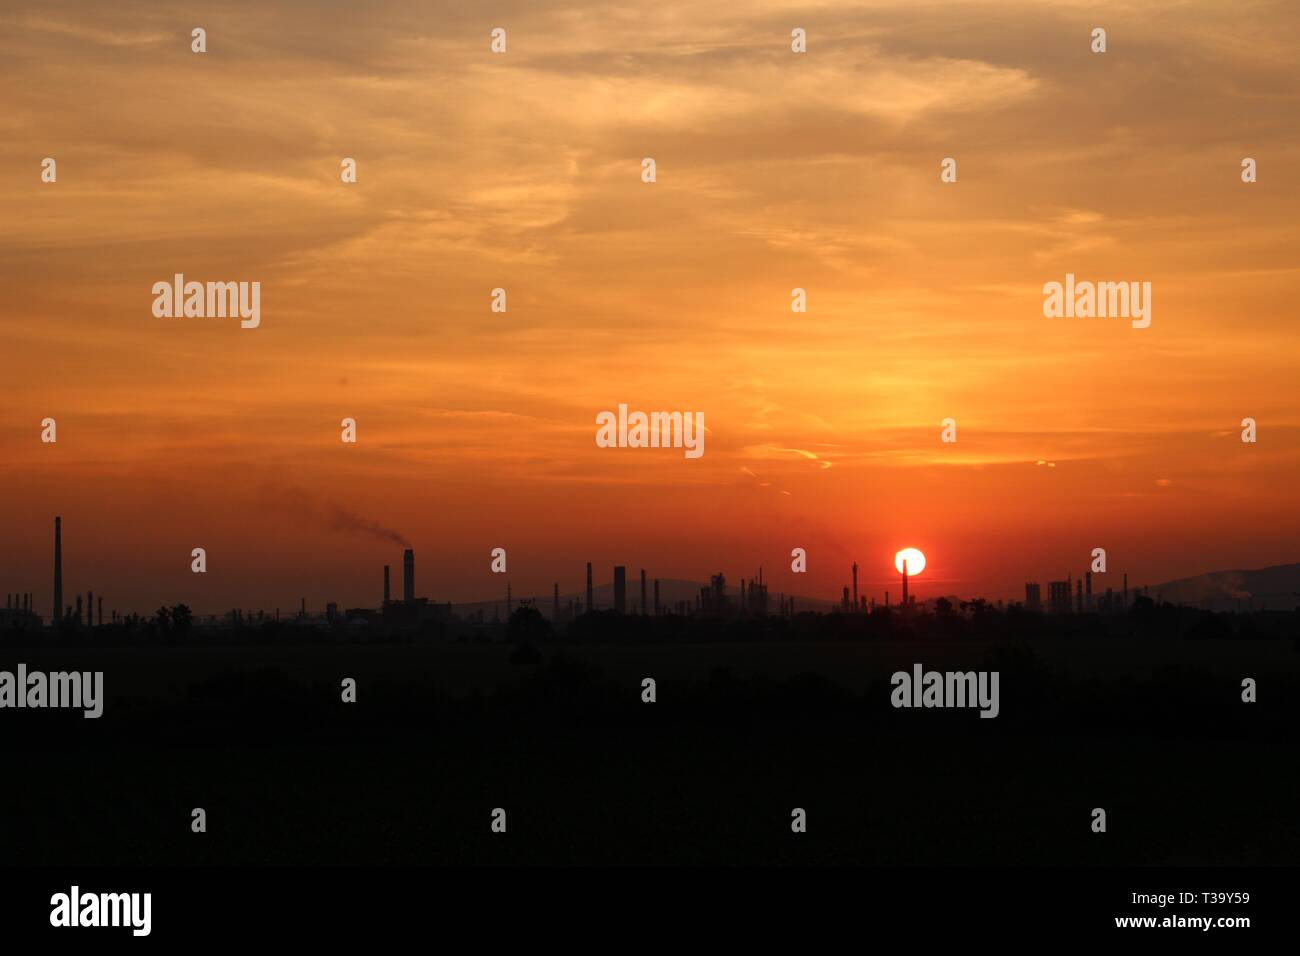 Oil rafinery during sunset - Stock Image